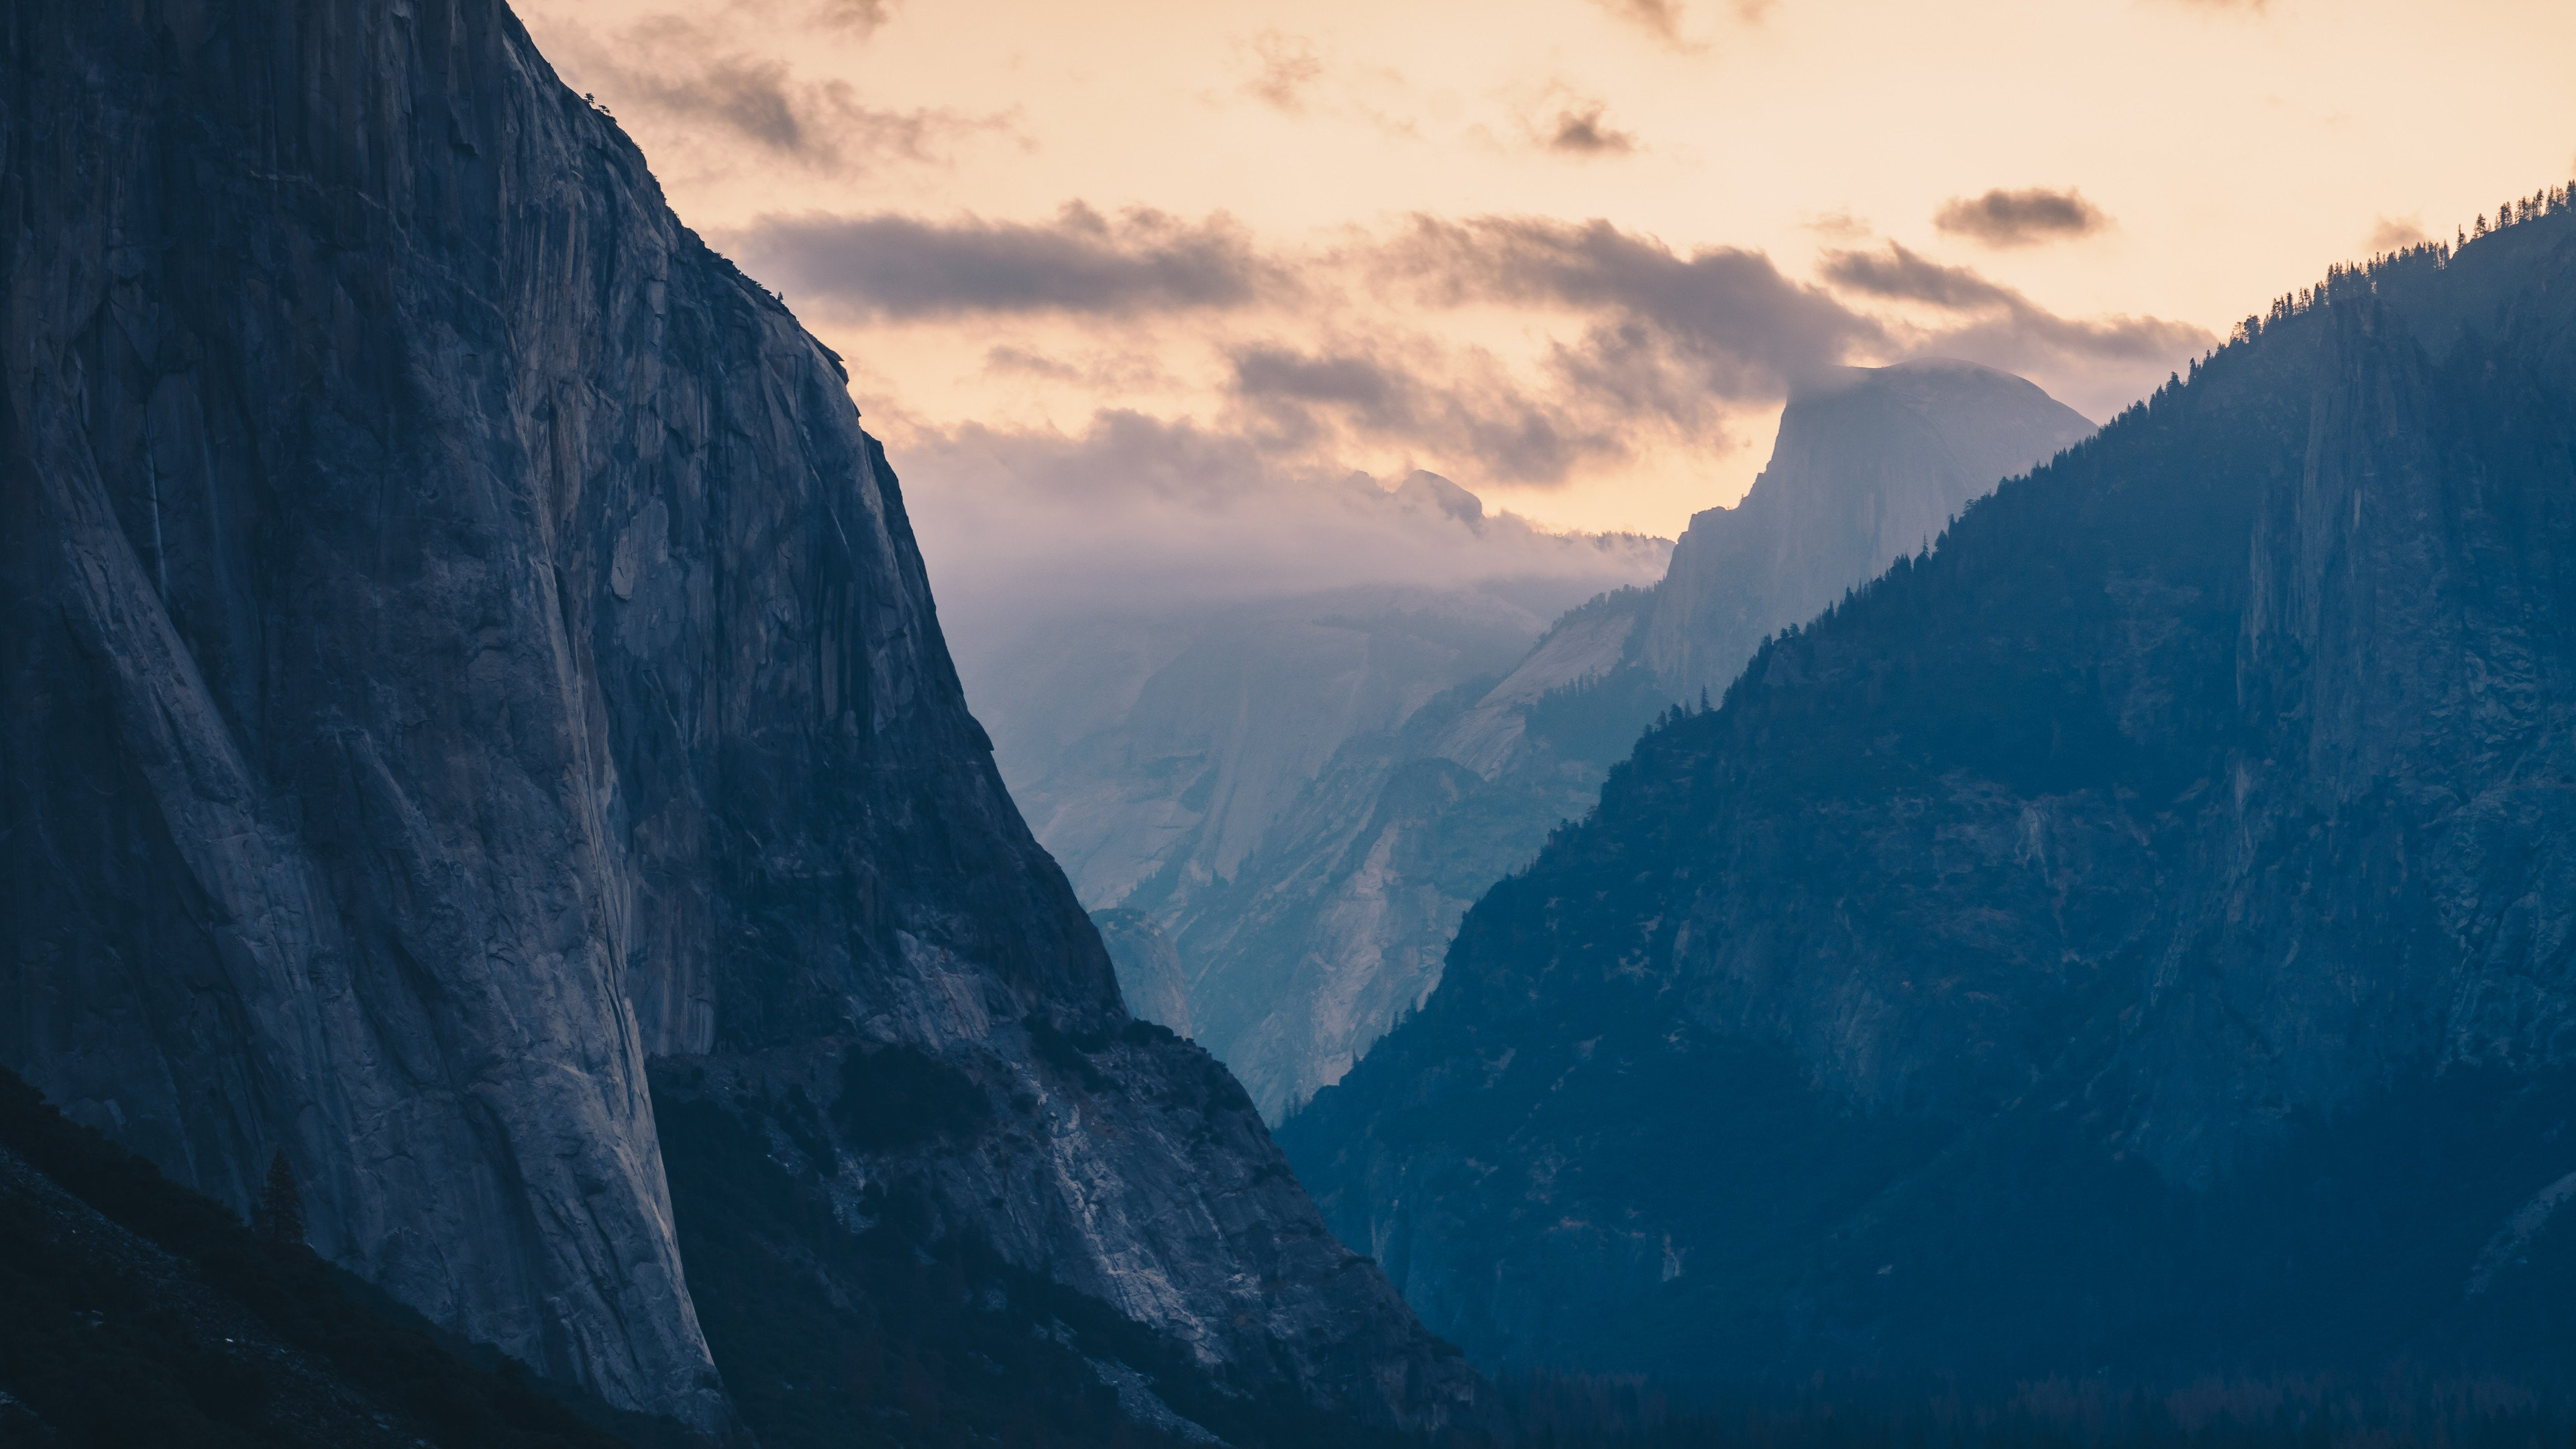 Sunrise Over Yosemite Valley CA wallpaper